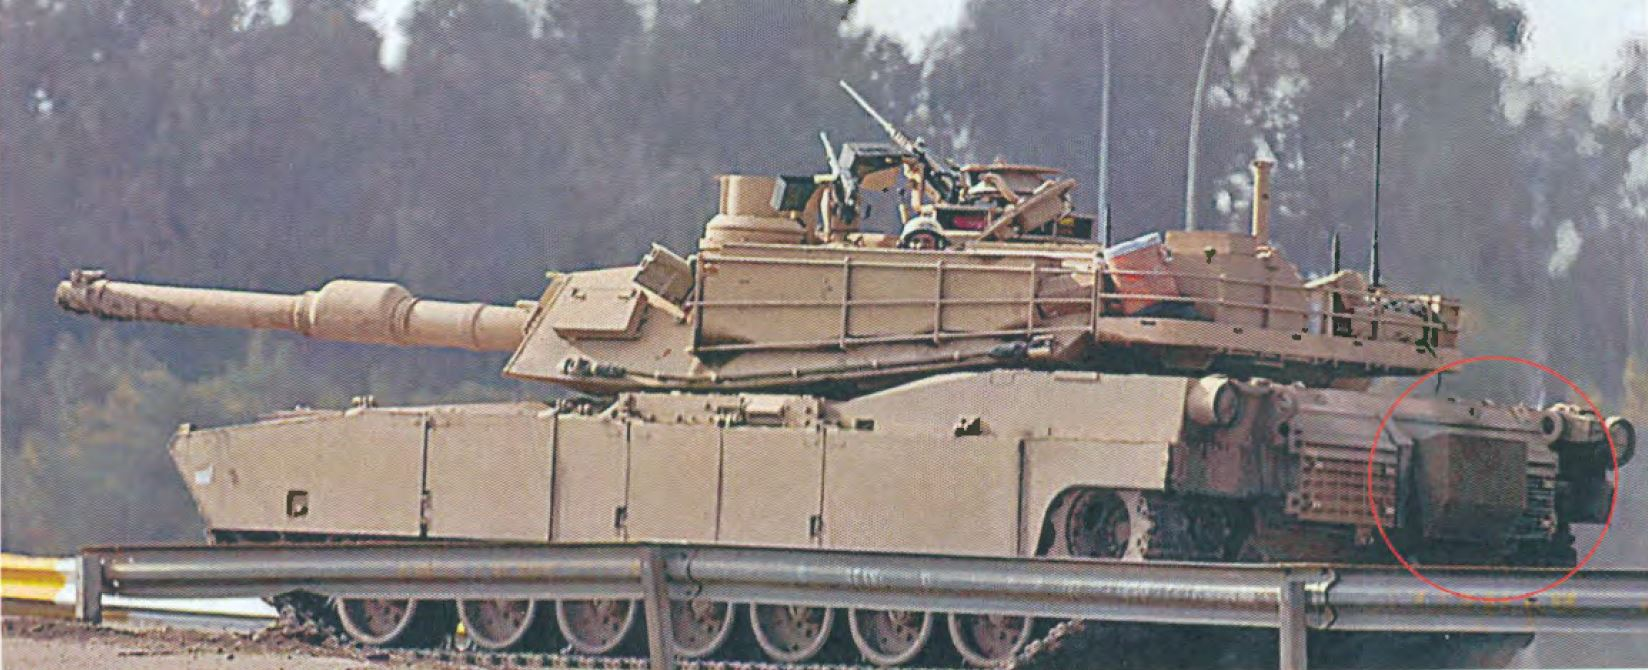 Image of M1 tank with exhaust deflector